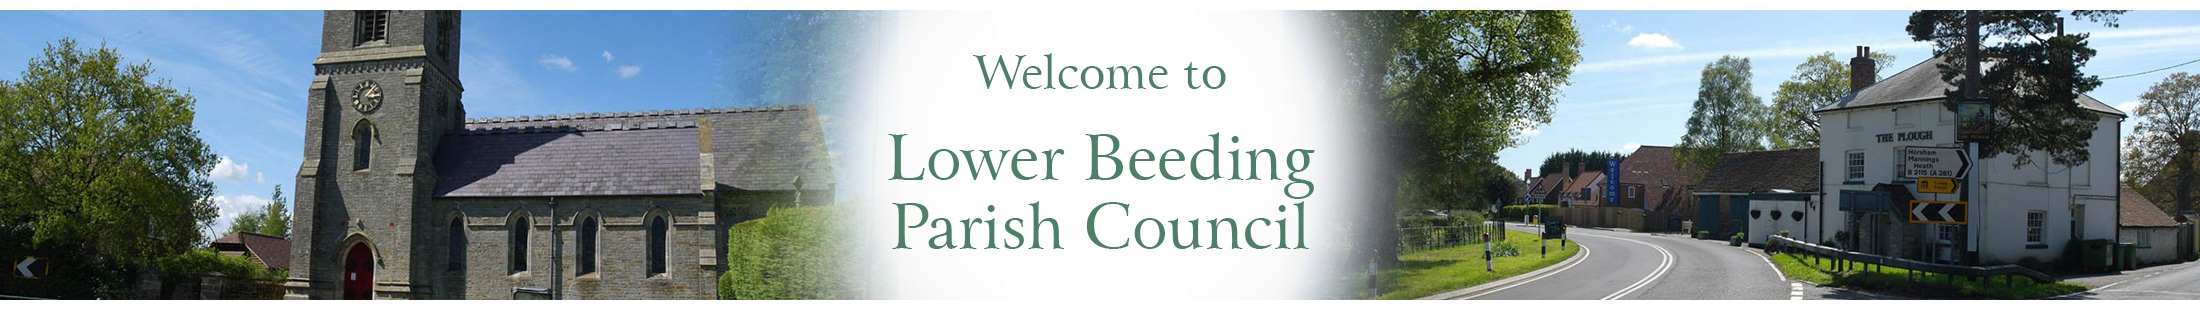 Header Image for Lower Beeding Parish Council